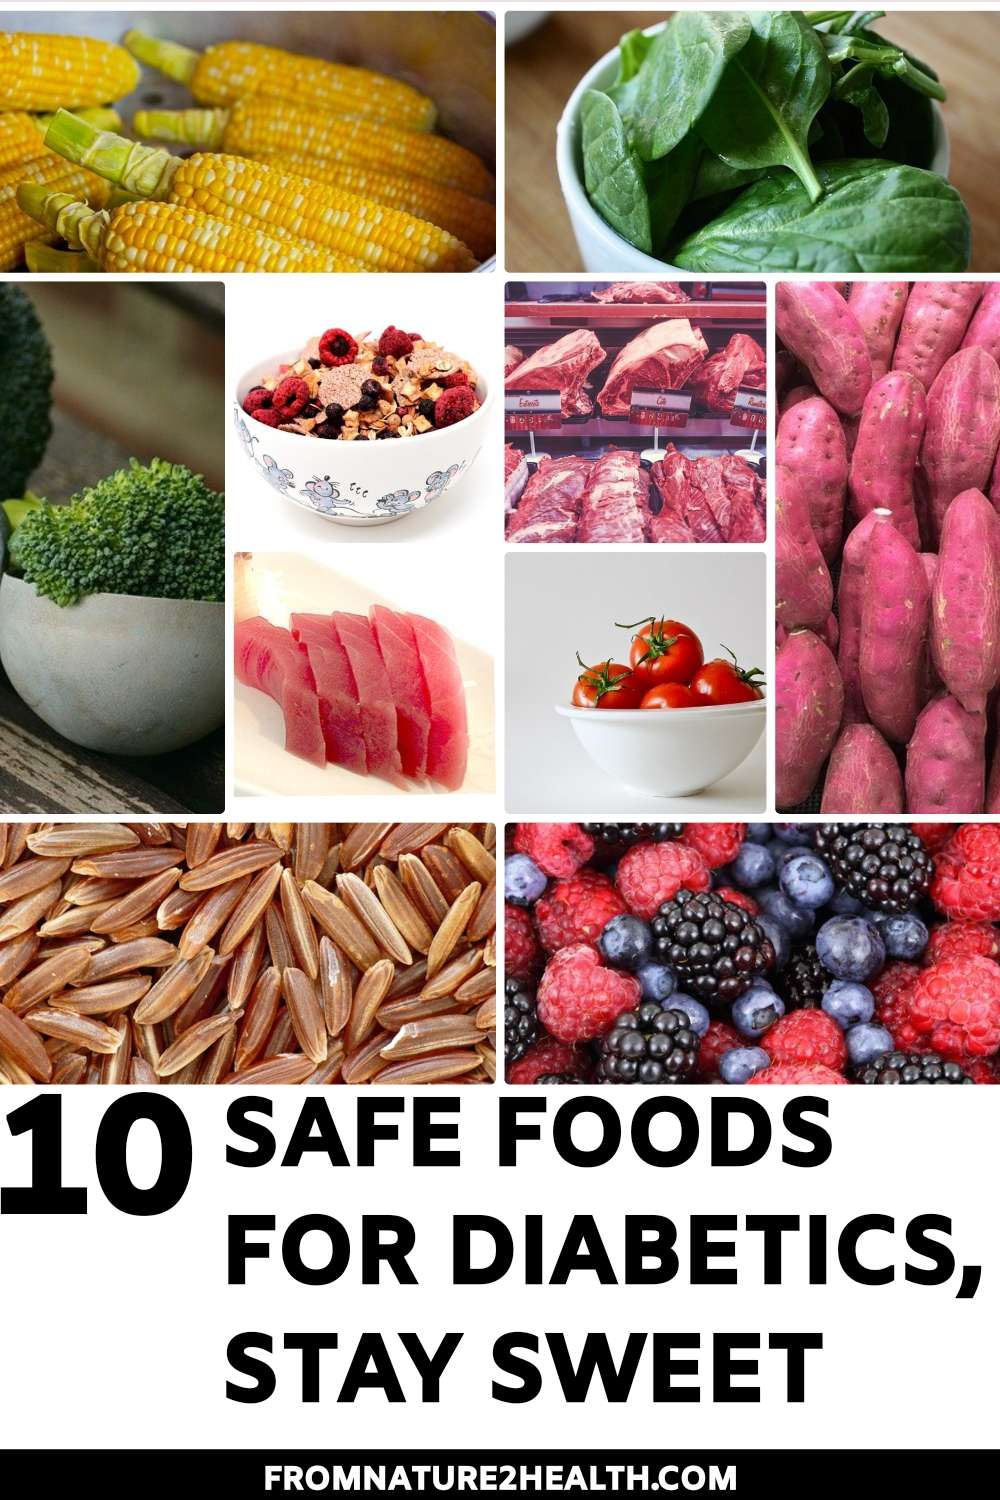 Berry, Broccoli, Corn, Meat, Oatmeal, Red Rice, Tomatoes, Spinach, Sweet Potatoes is Safe Foods for Diabetics, Stay Sweet